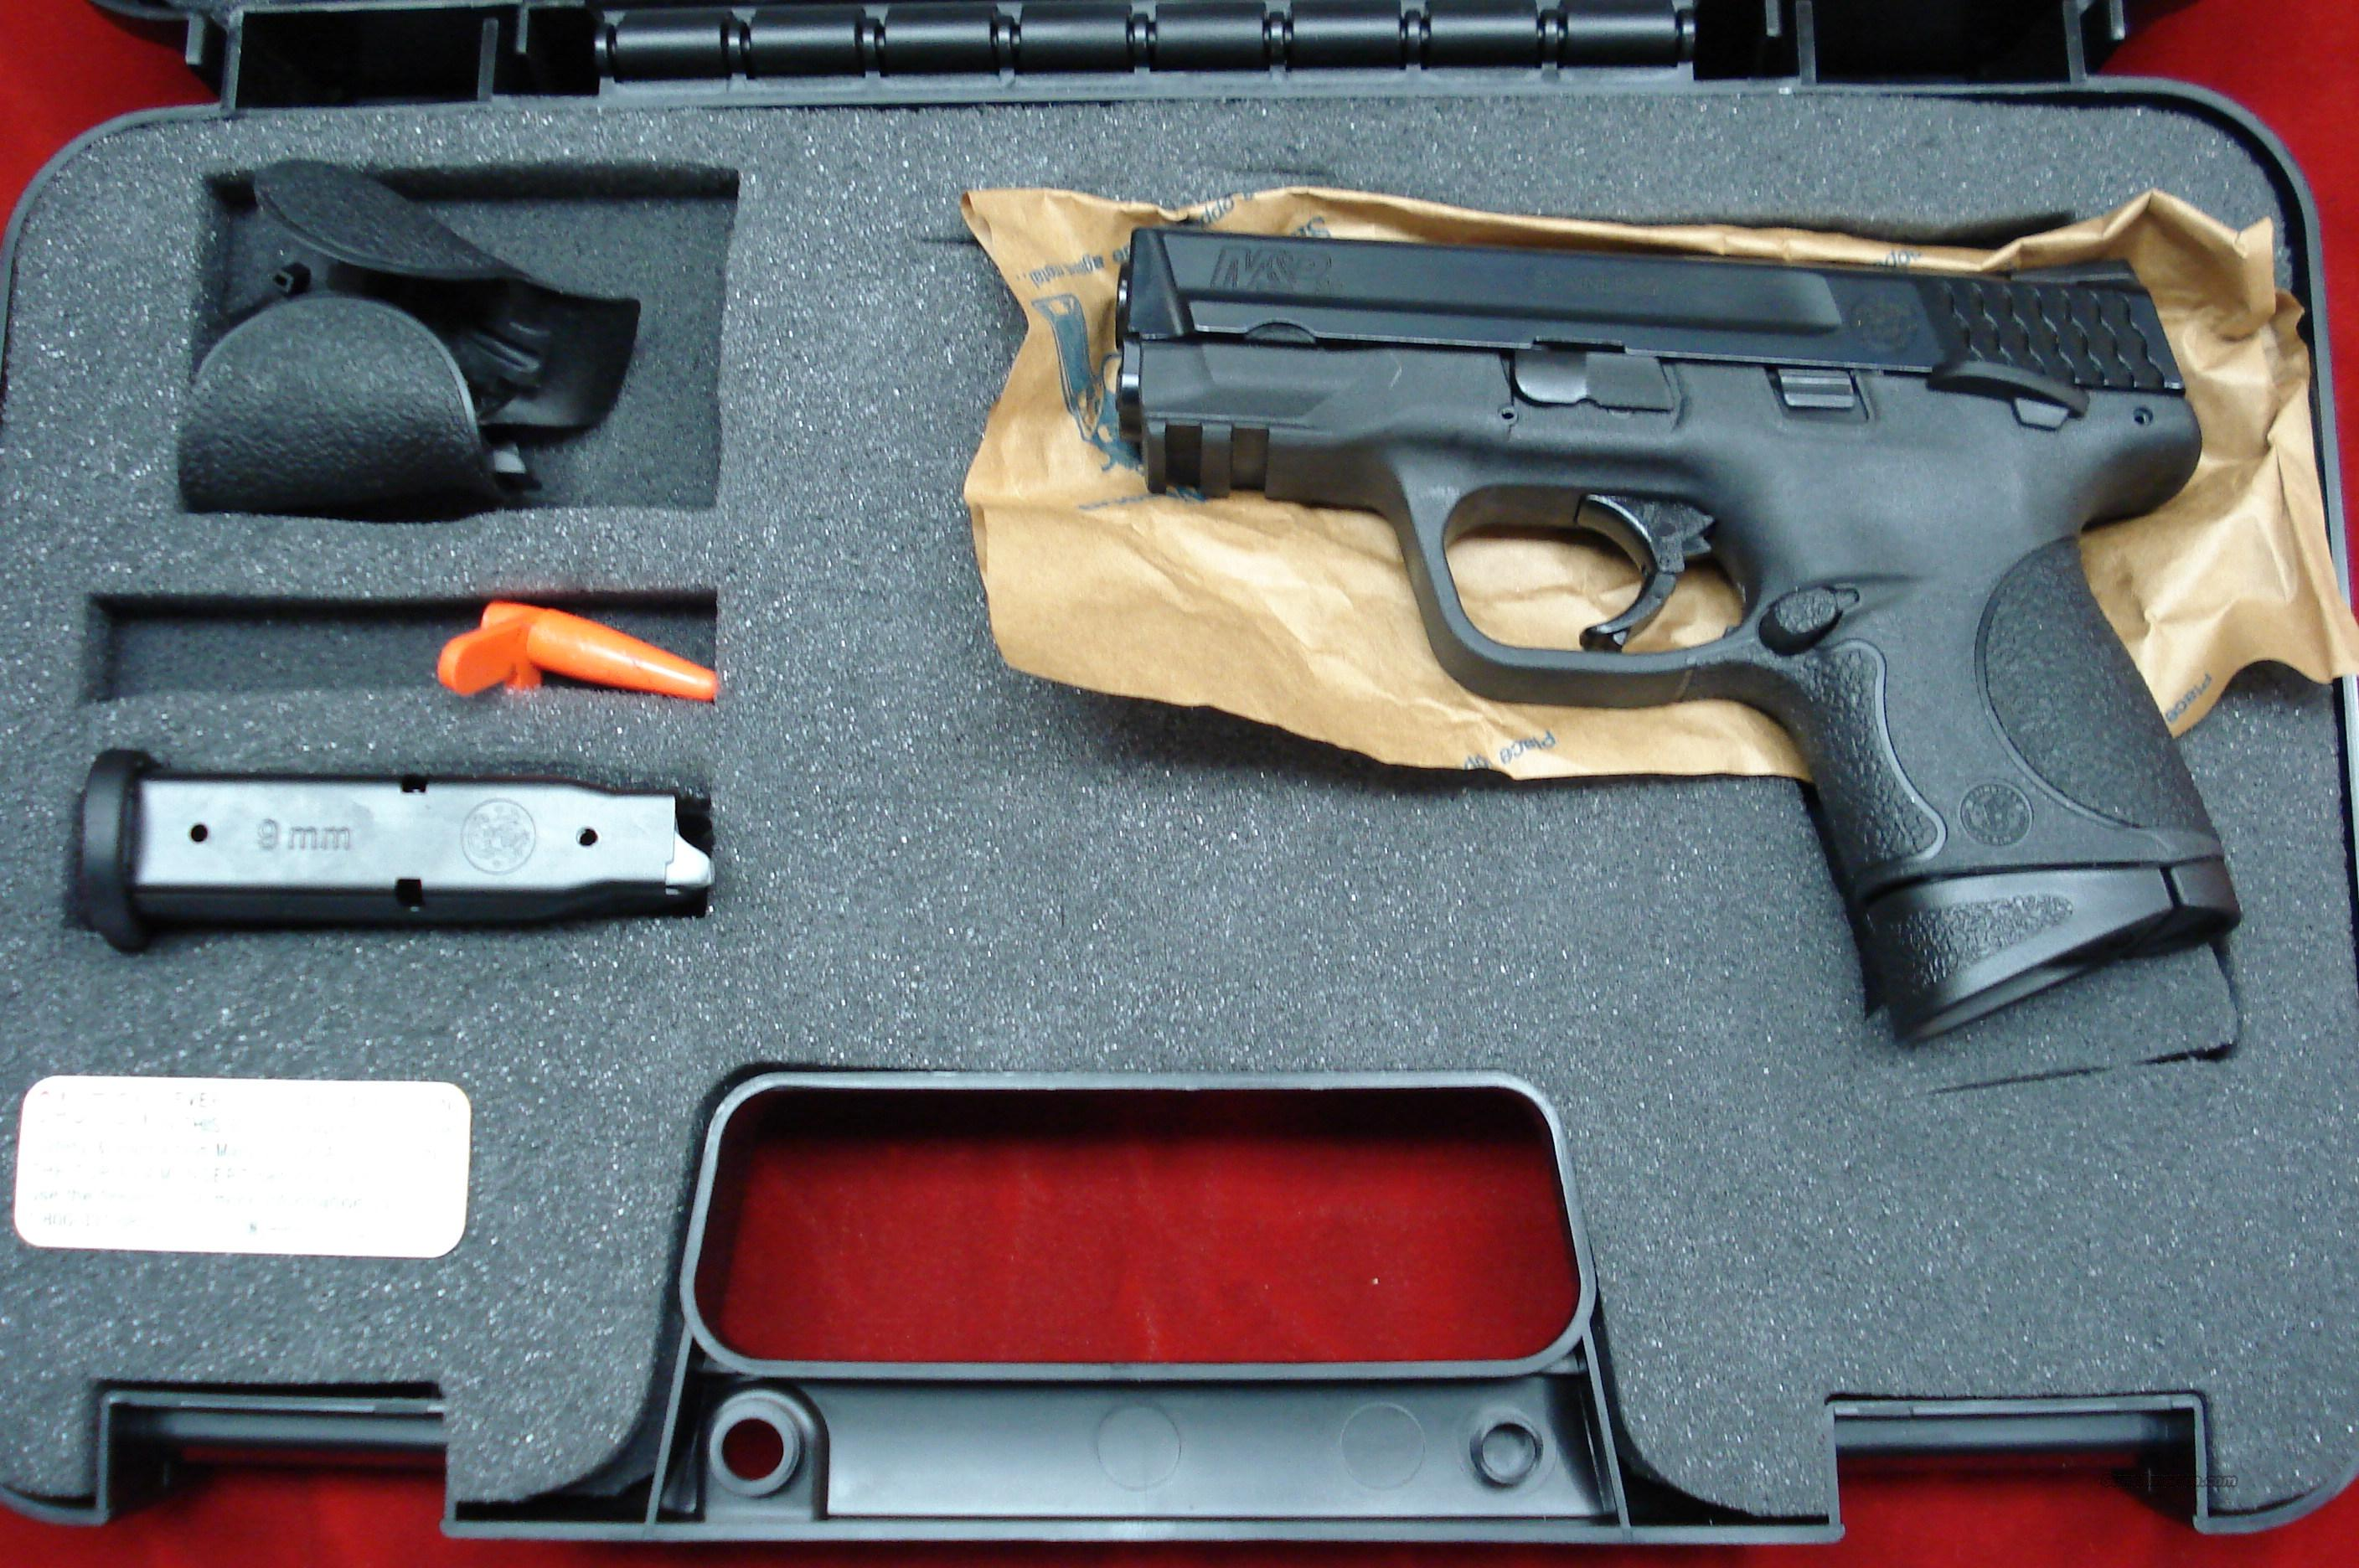 SMITH AND WESSON M&P COMPACT 9MM  AMBI. THUMB SAFETY NEW   Guns > Pistols > Smith & Wesson Pistols - Autos > Polymer Frame